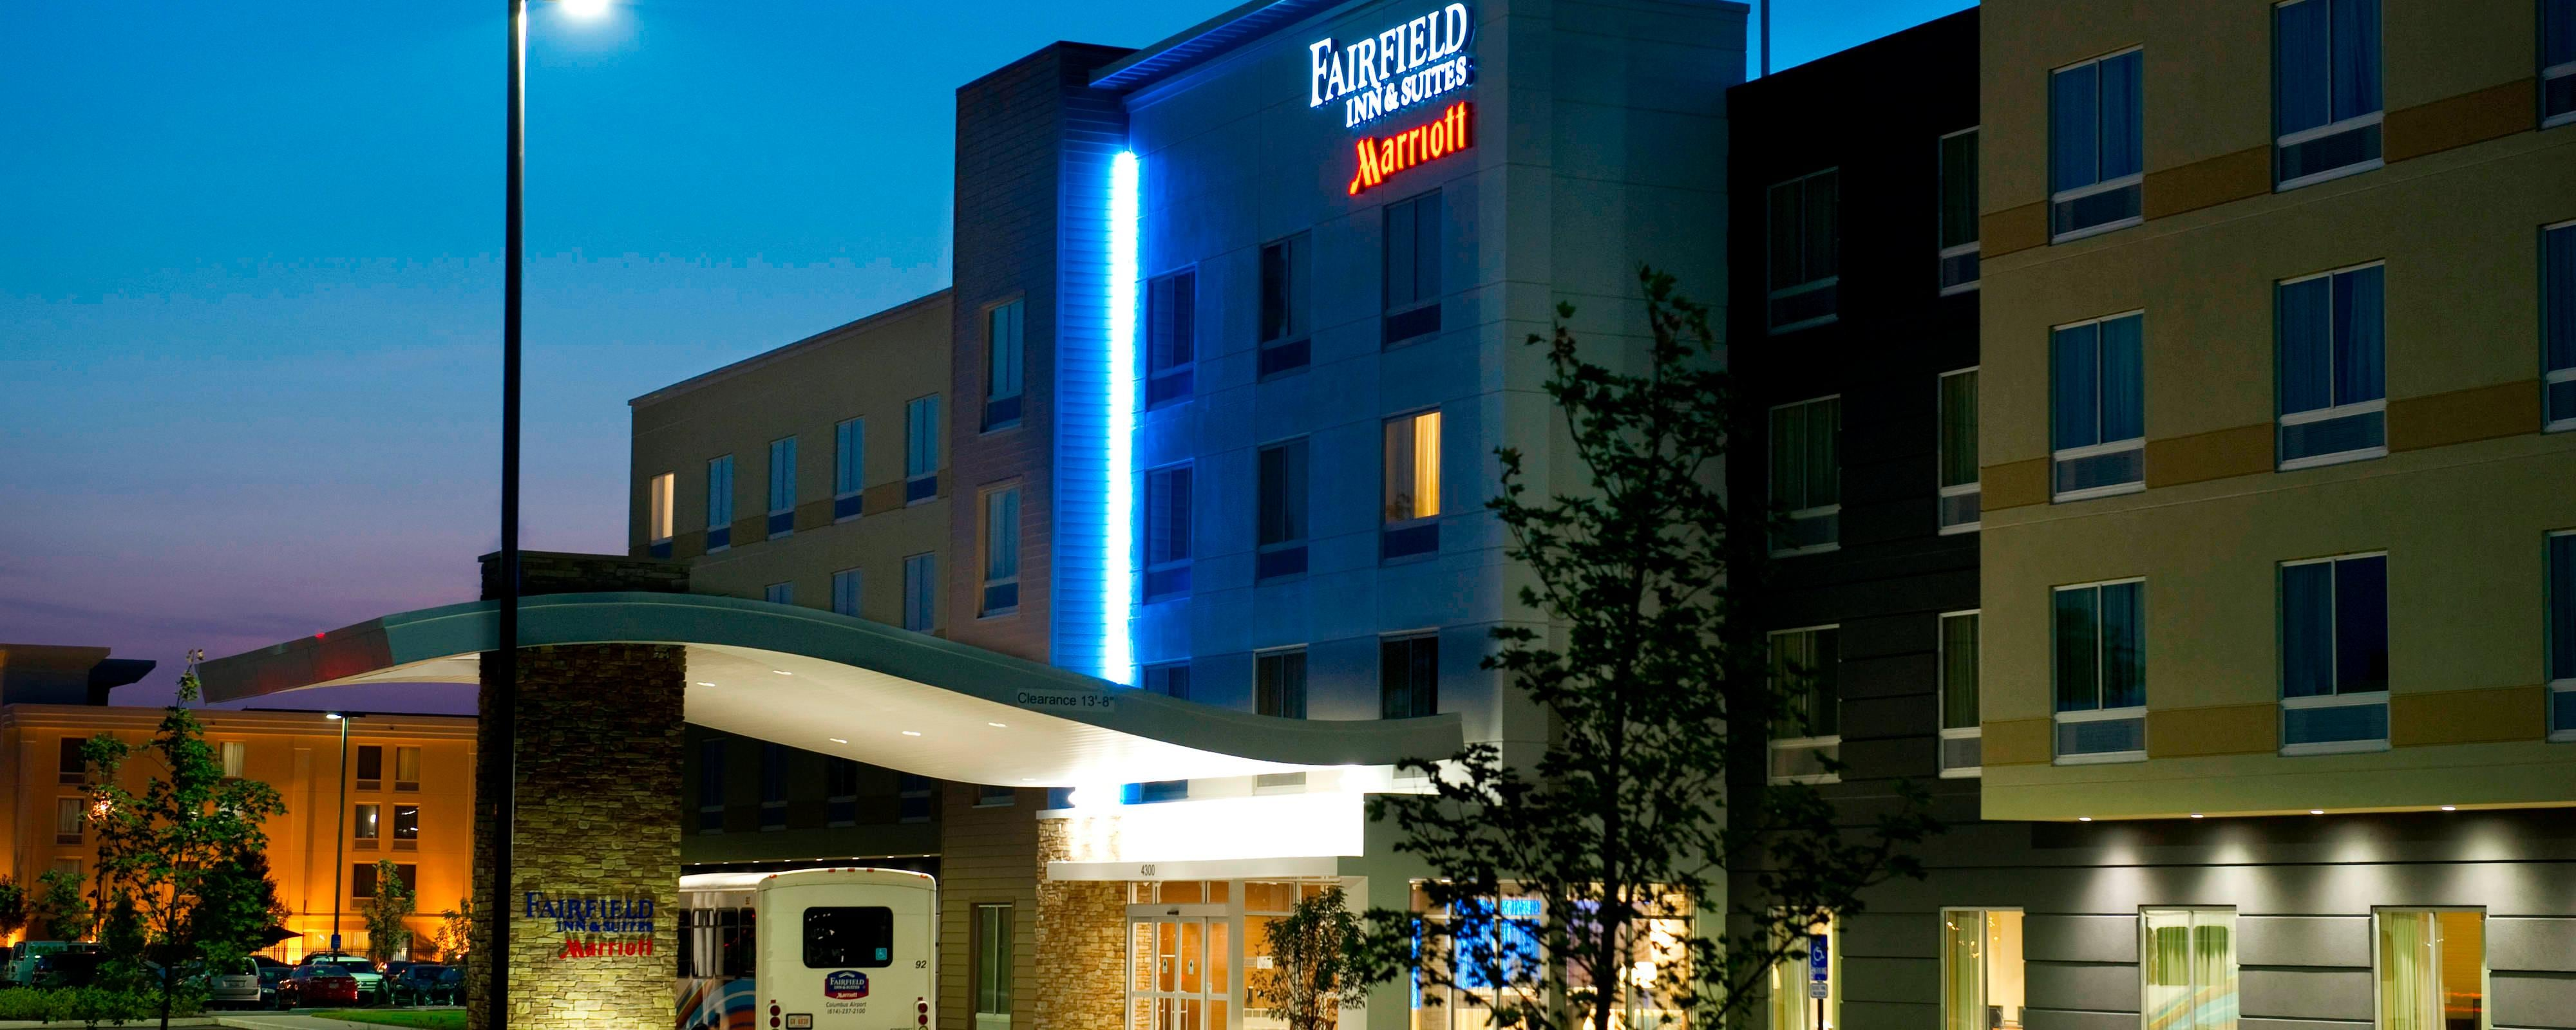 Airport Hotel In Columbus Ohio Fairfield Inn